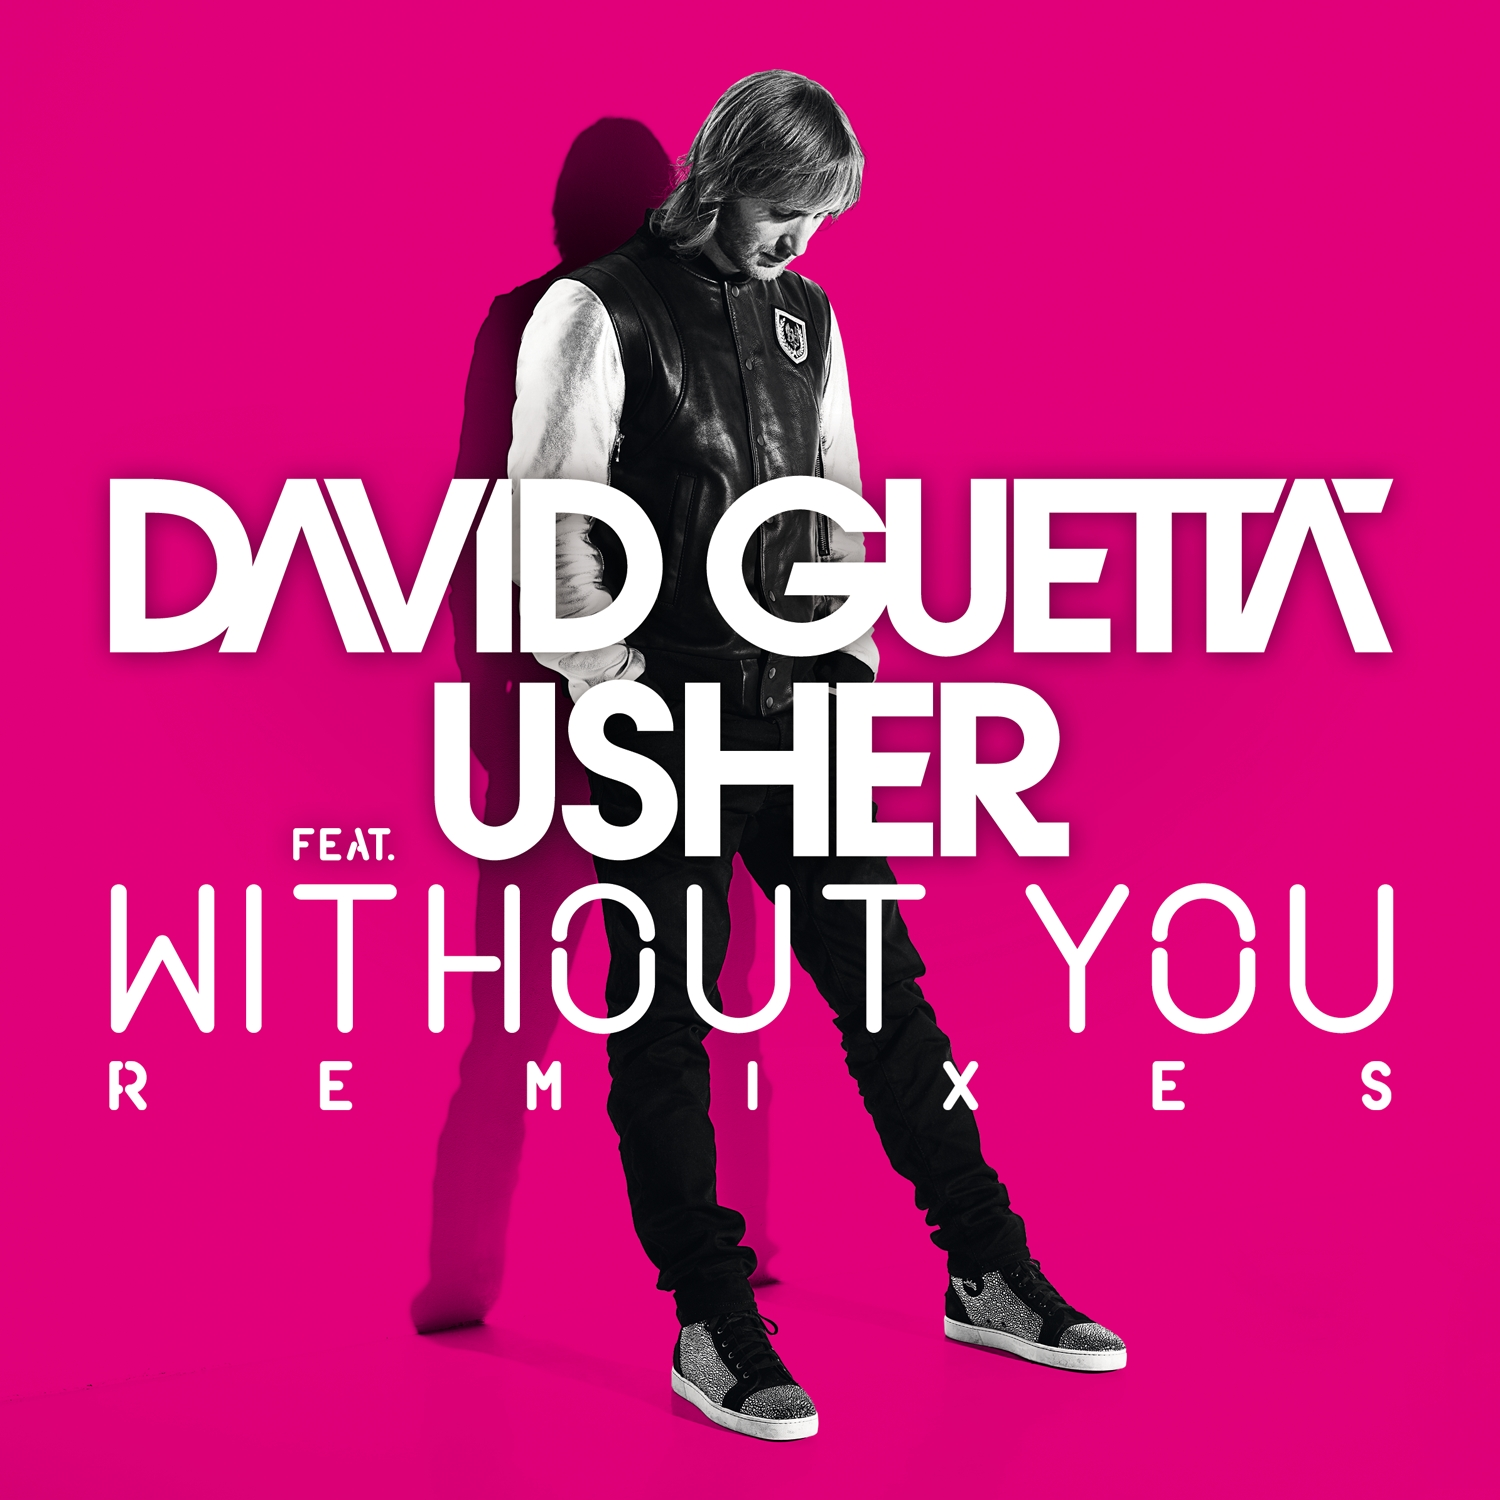 Without you (feat. Usher) [extended] by david guetta usher on.